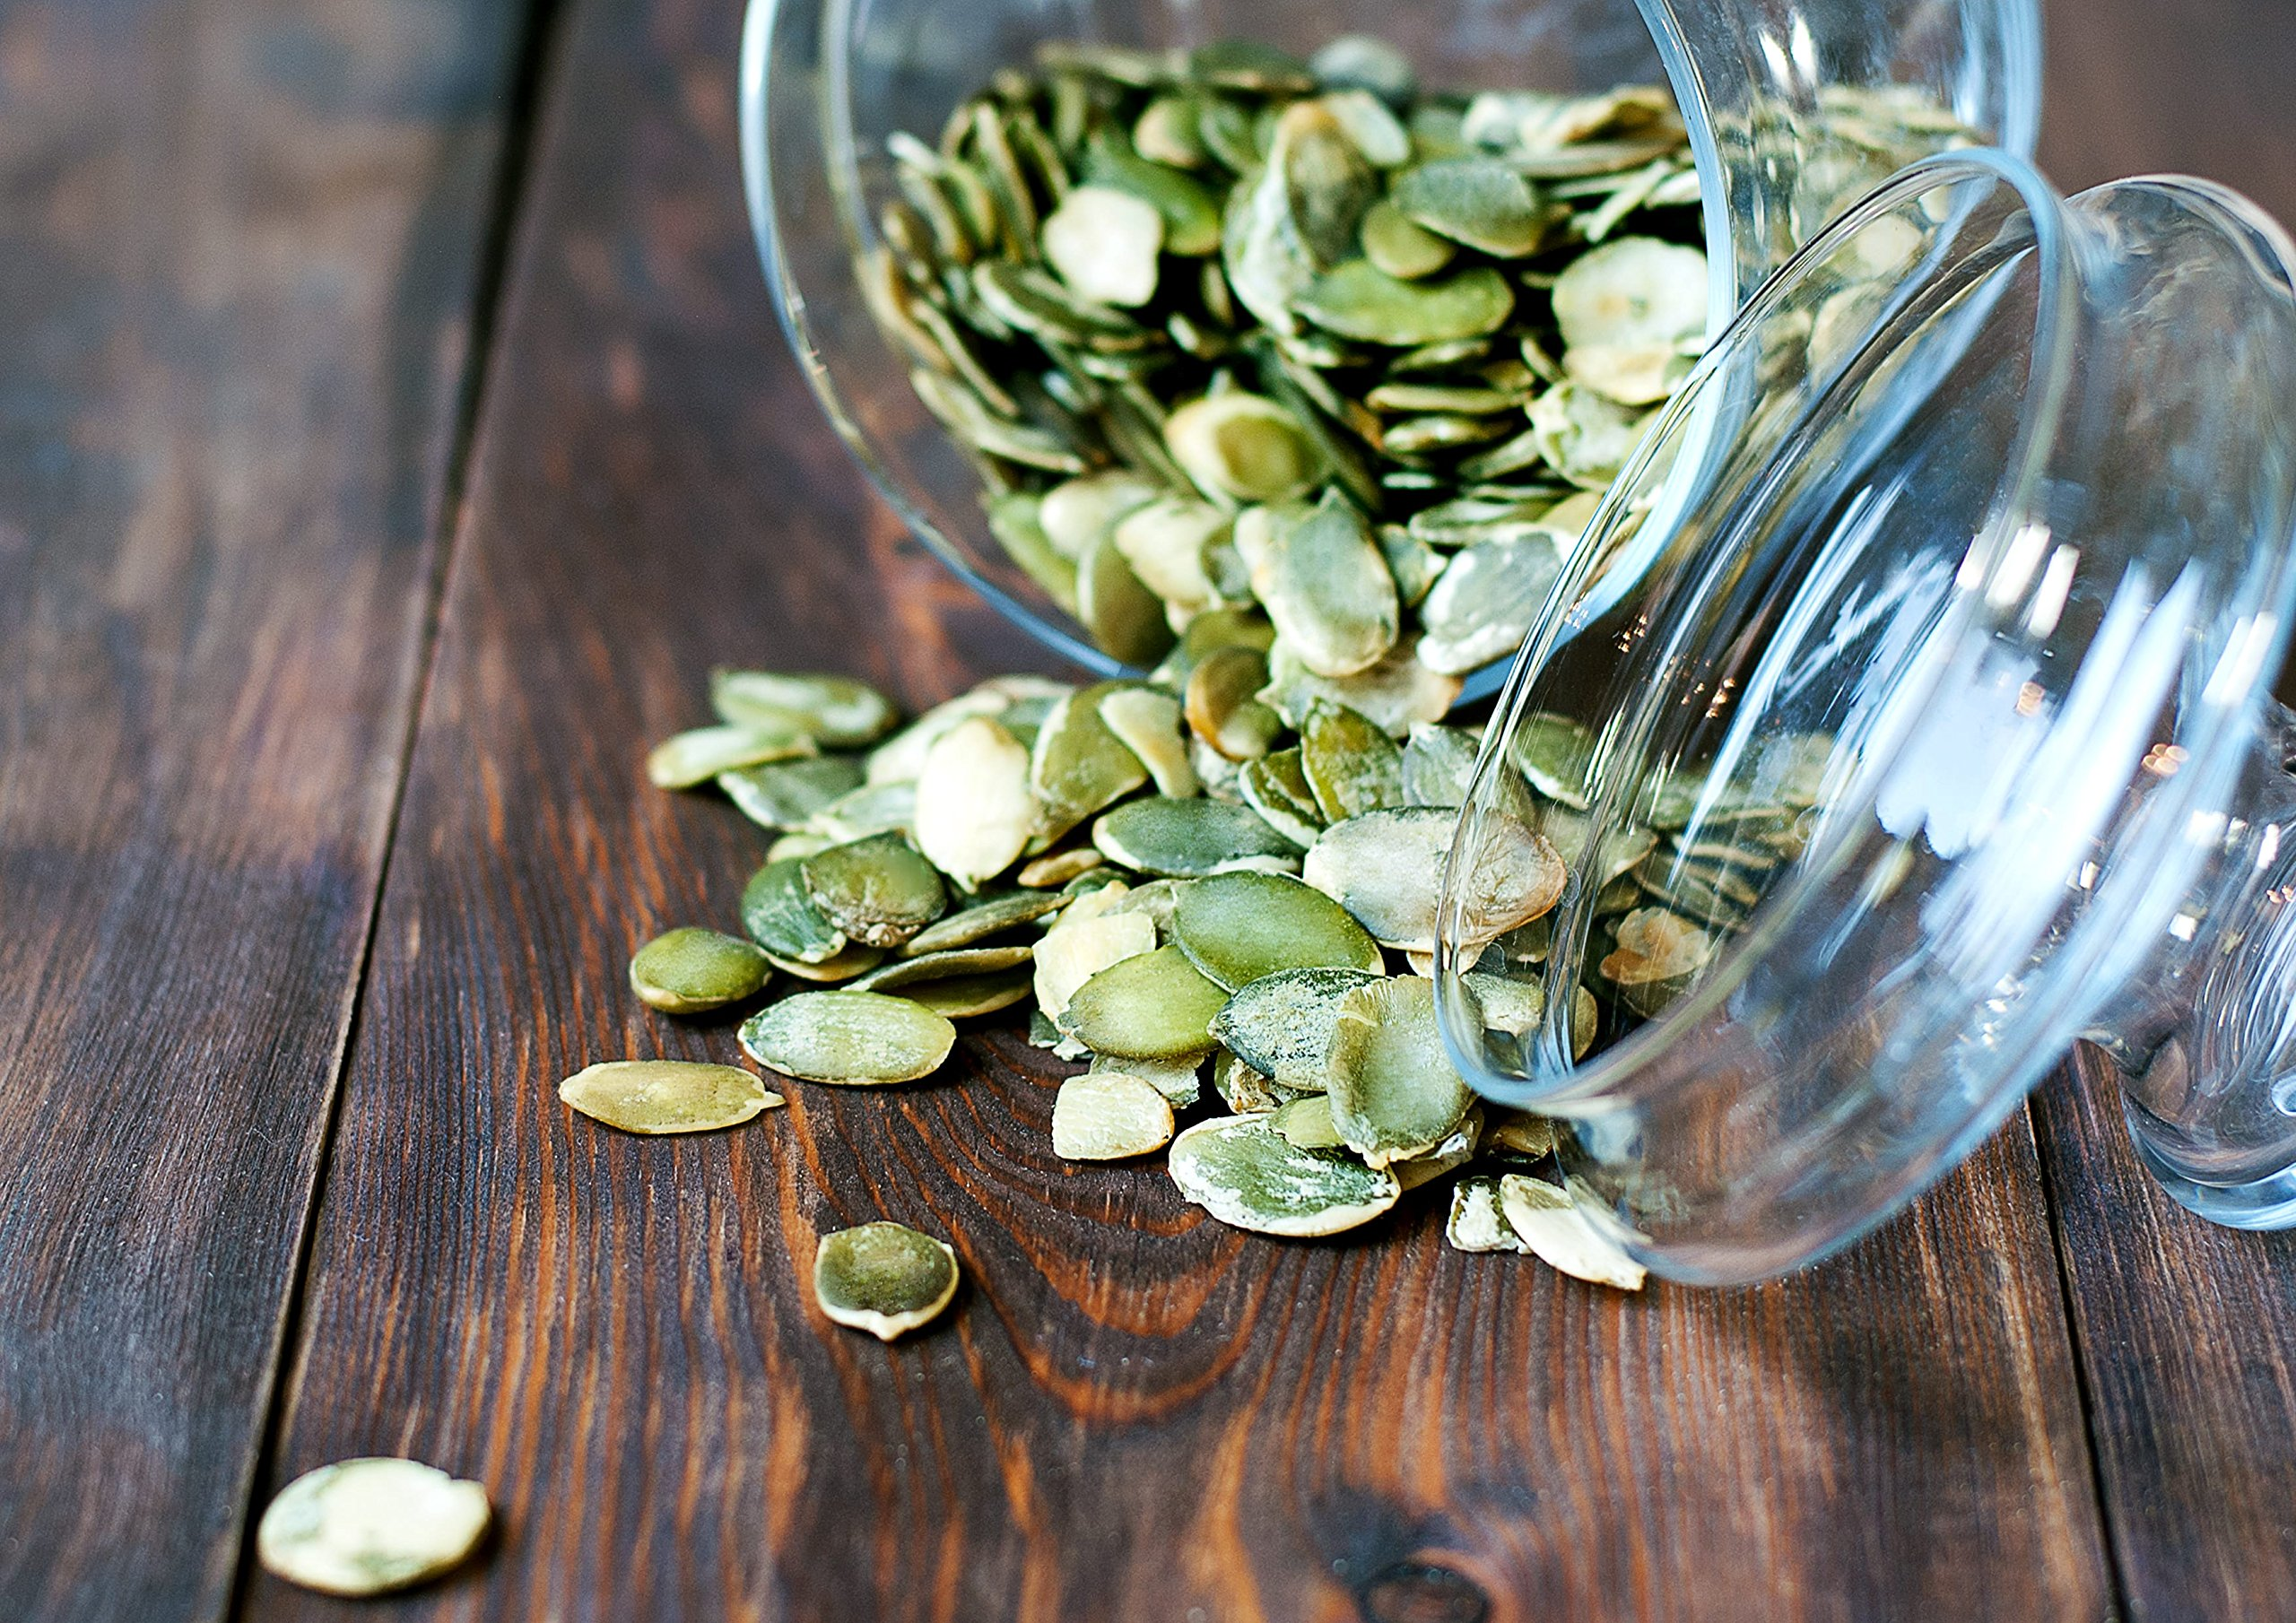 Organic Dry Roasted Pumpkin Seeds with Sea Salt, 1 Pound — Non-GMO Kernels, Pepitas, Kosher, Vegan, No Shell, Healthy Snack, Bulk by Food to Live (Image #6)